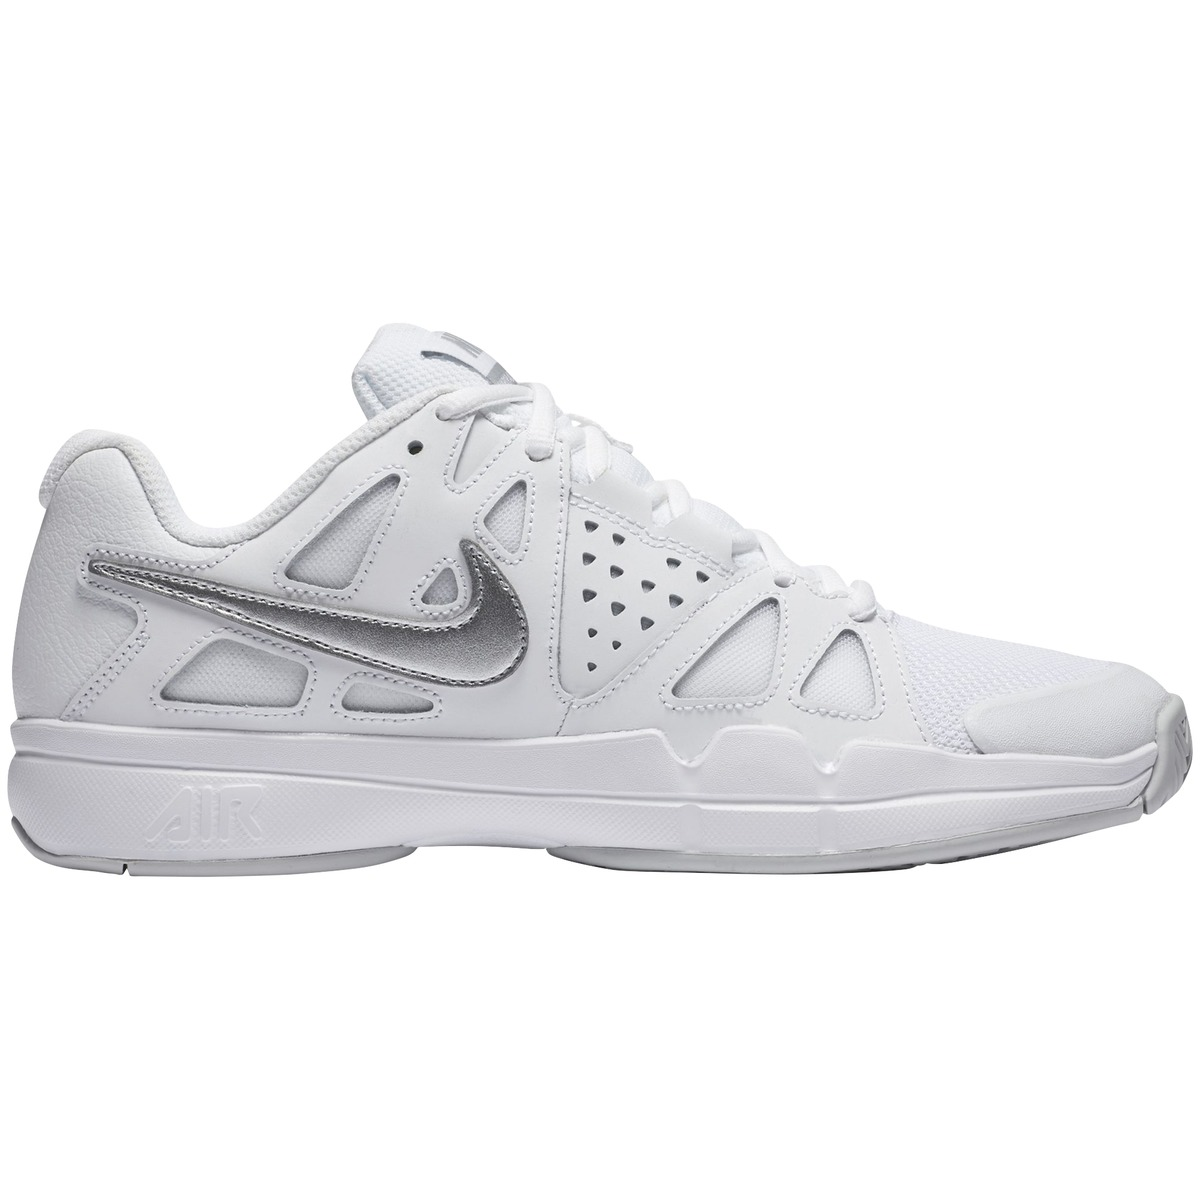 sale retailer 3bffe 7545f nike air vapor advantage wmn white metallic silve tennisskor dam